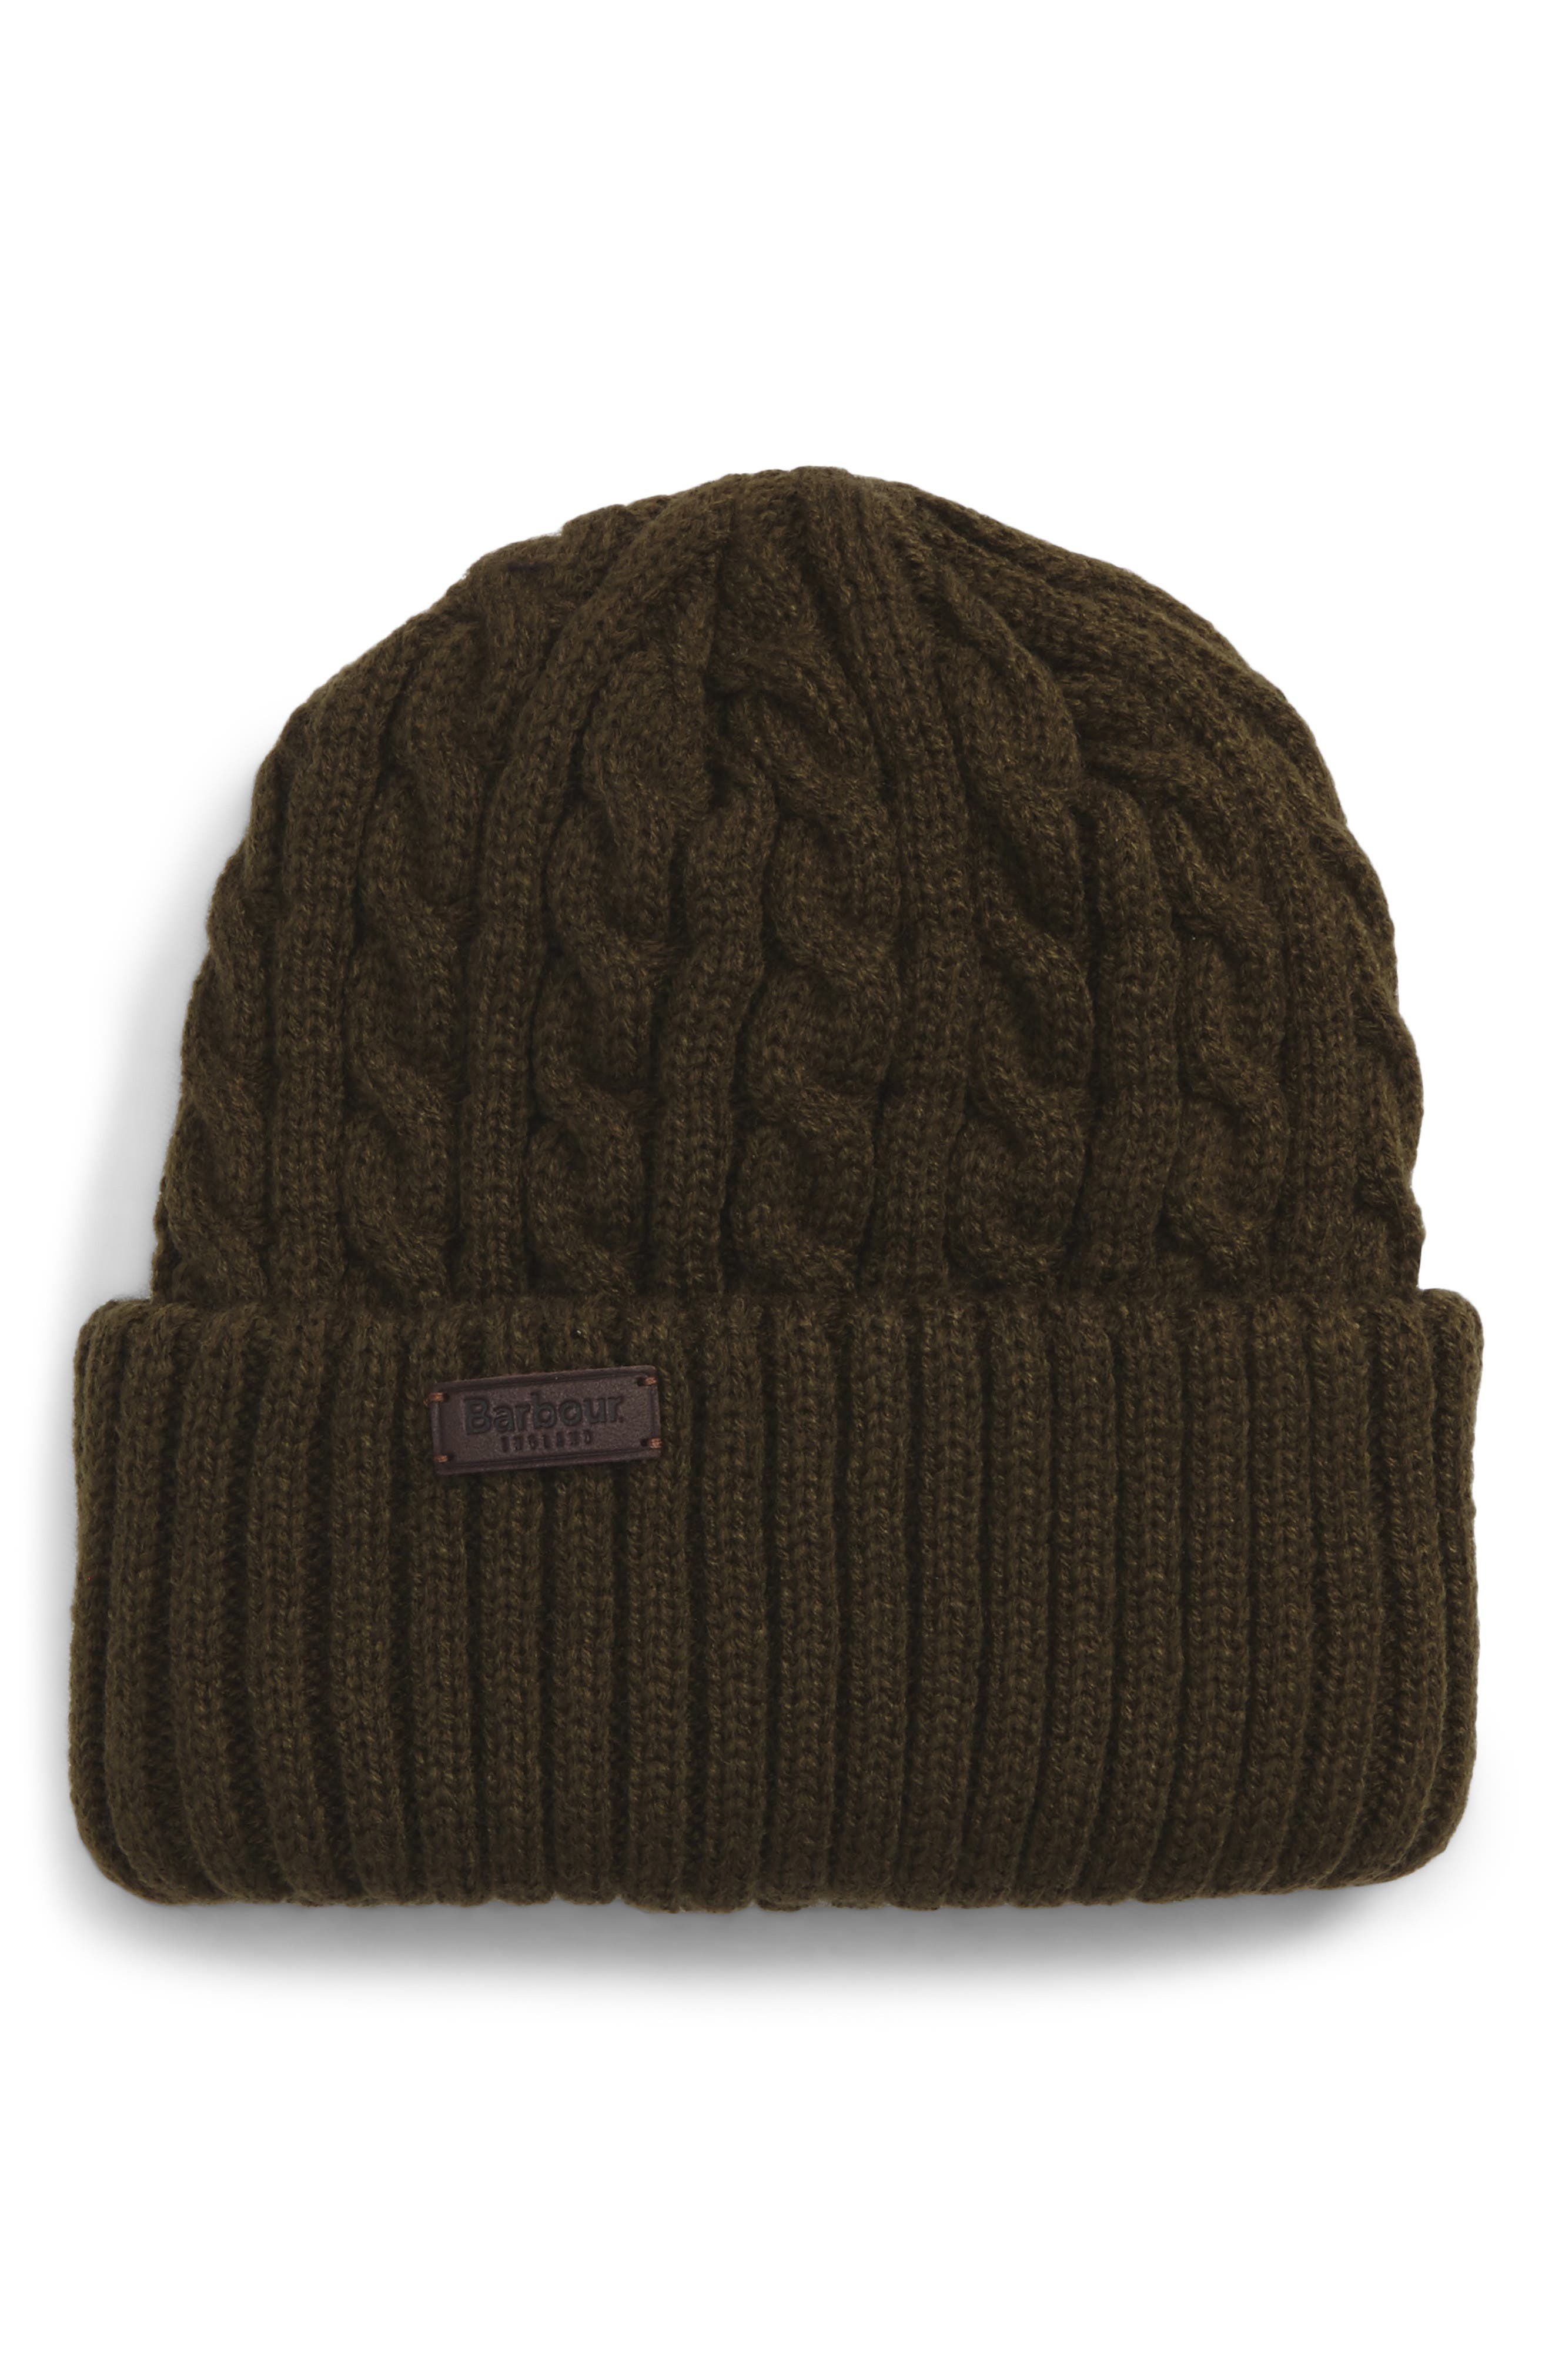 Barbour Balfron Cable Knit Beanie